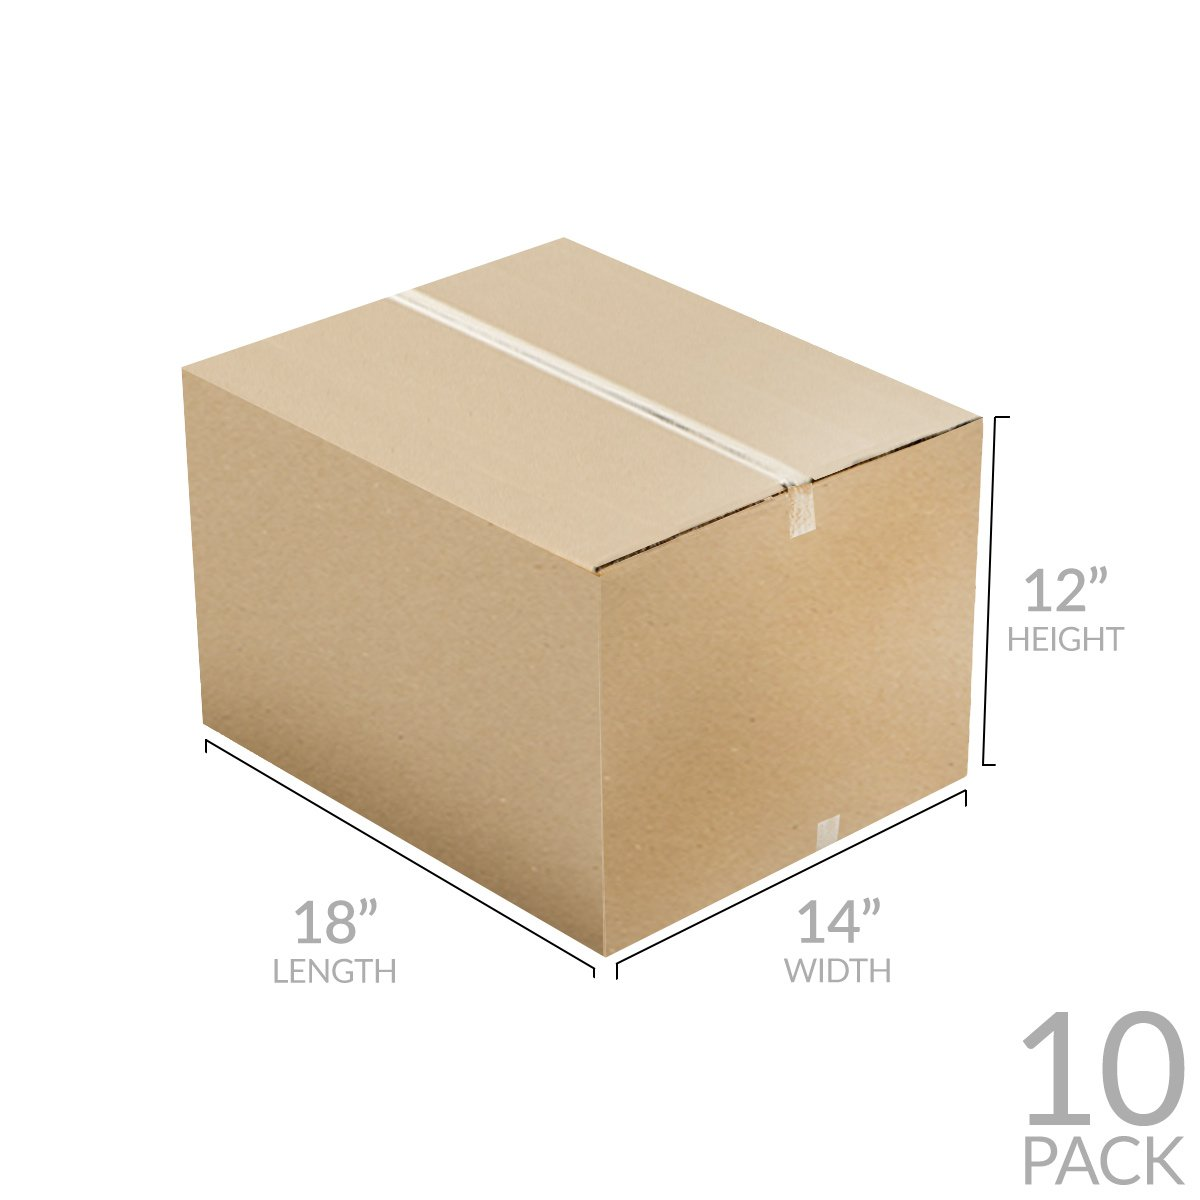 uBoxes Medium Moving Boxes, 18 x 14 x 12 inch, 10 Pack, Cardboard Box (BOXMINIMED10) by Uboxes (Image #4)